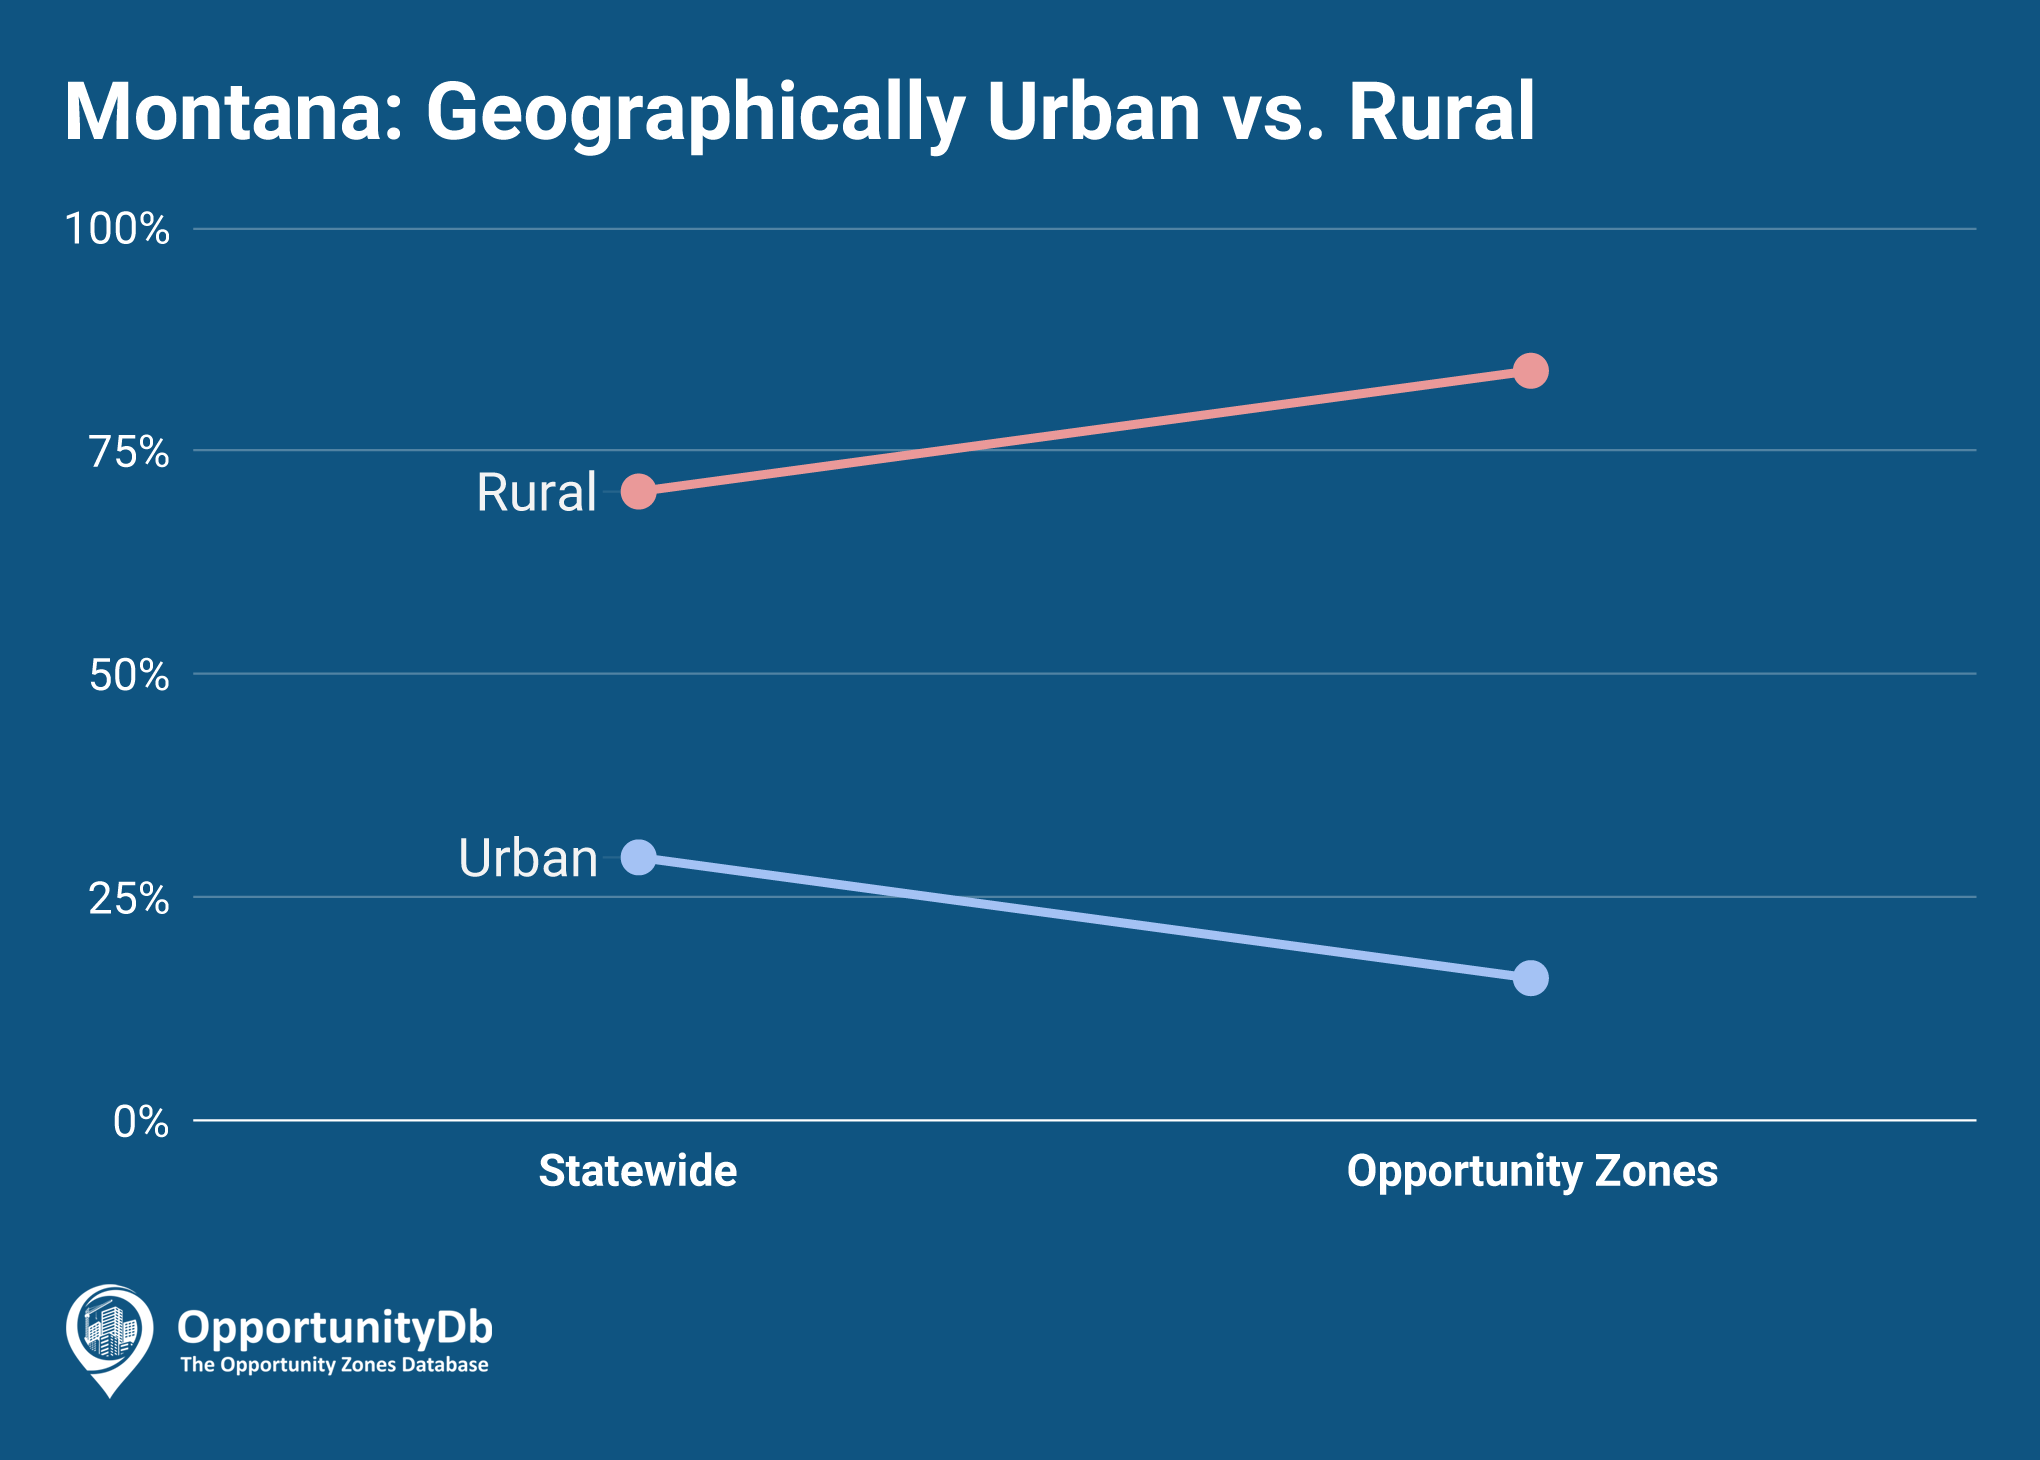 Urban vs. Rural in Montana Opportunity Zones